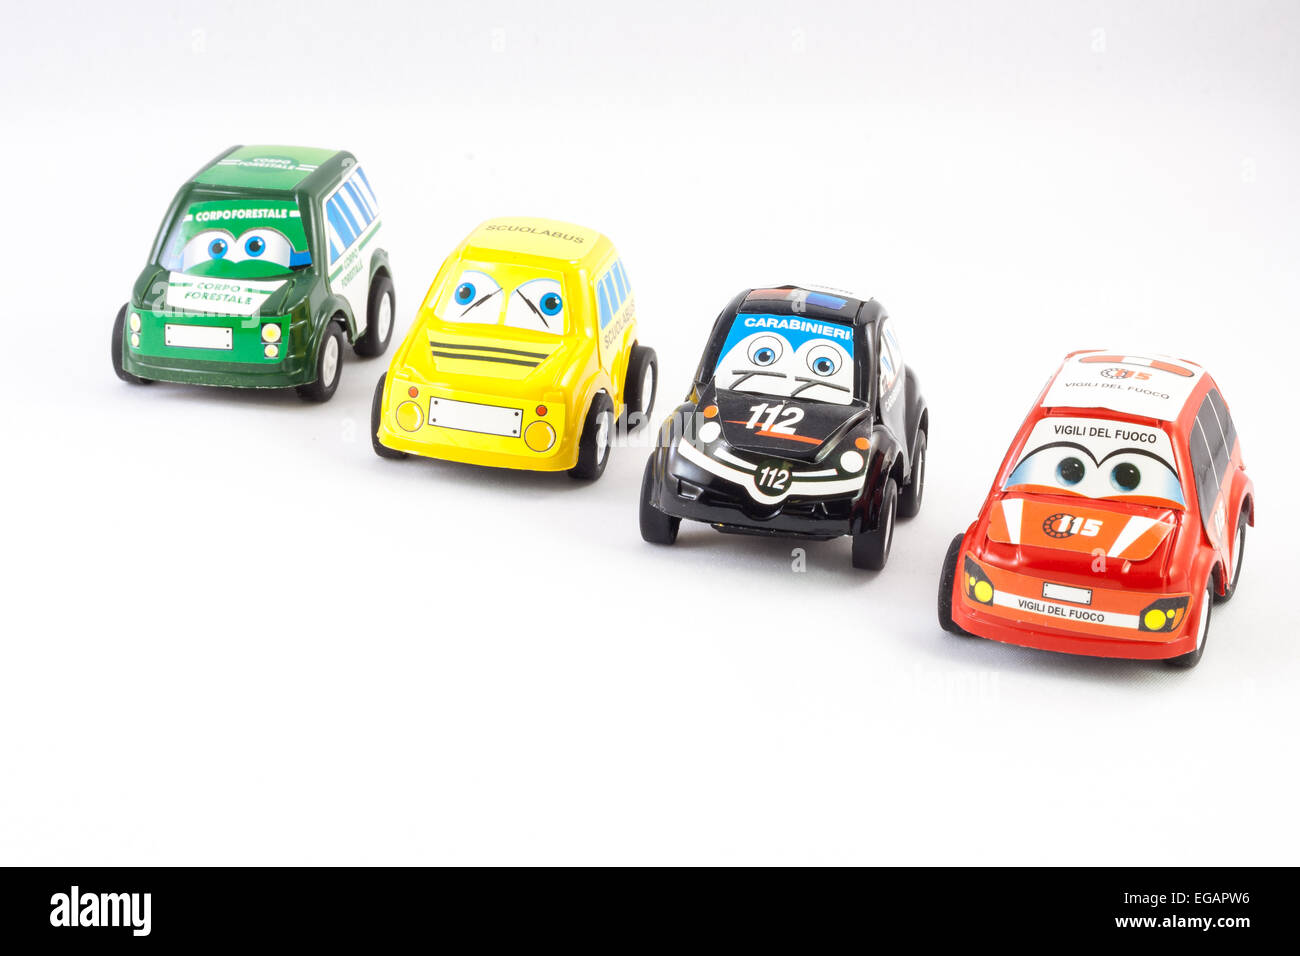 Several law enforcement small cars. Italian Police, Fireman, Ranger, Scuolabus - Stock Image